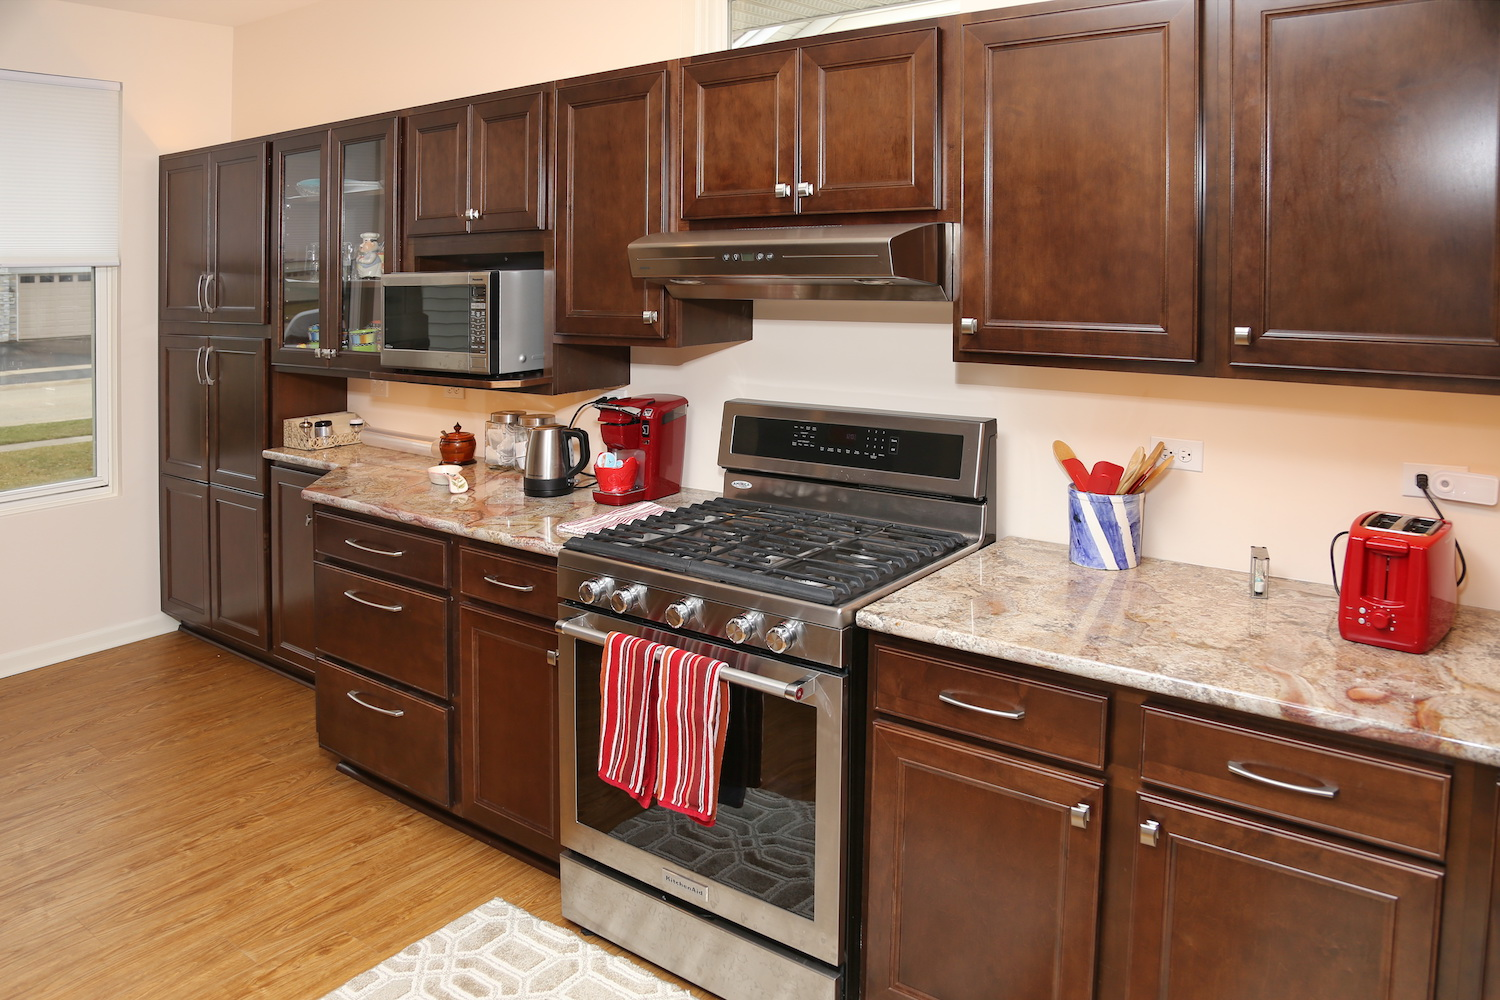 Kitchen Transformation Before And After: Before And After: See A Beautiful Kitchen Transformation